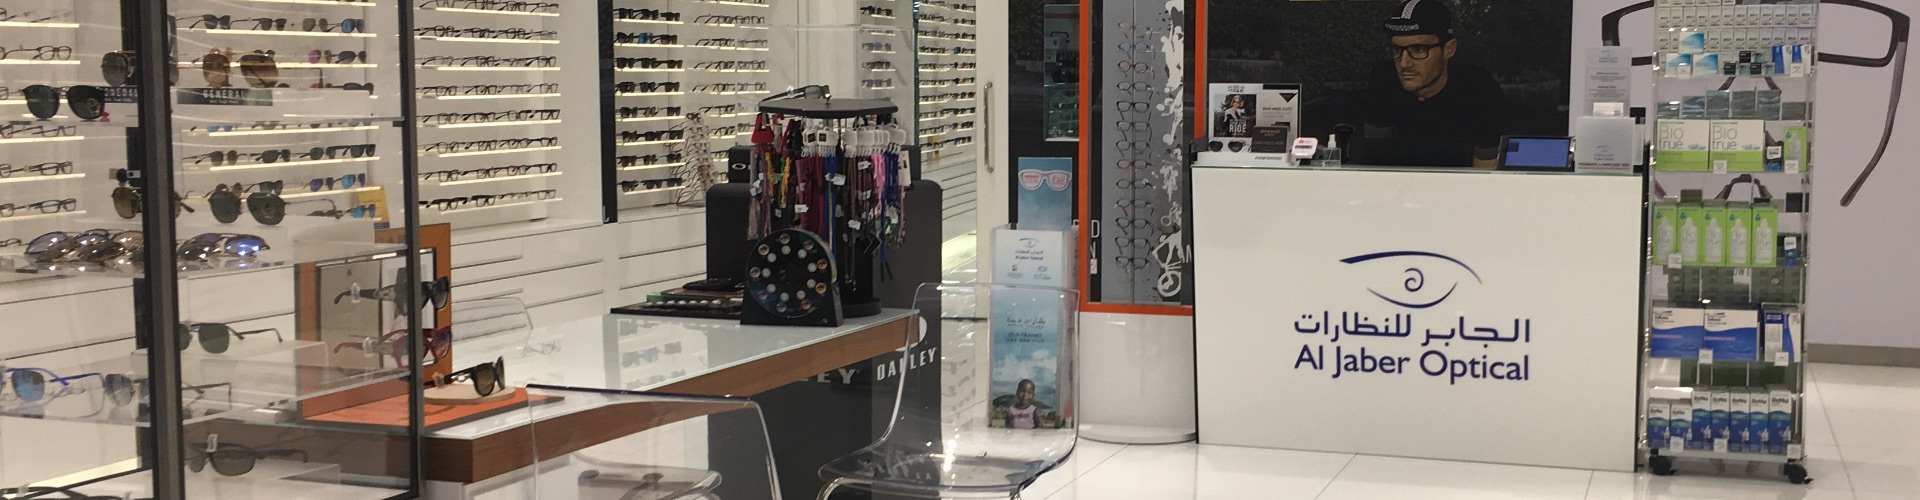 Al Jaber Optical - Al Seef, Dubai, UAE